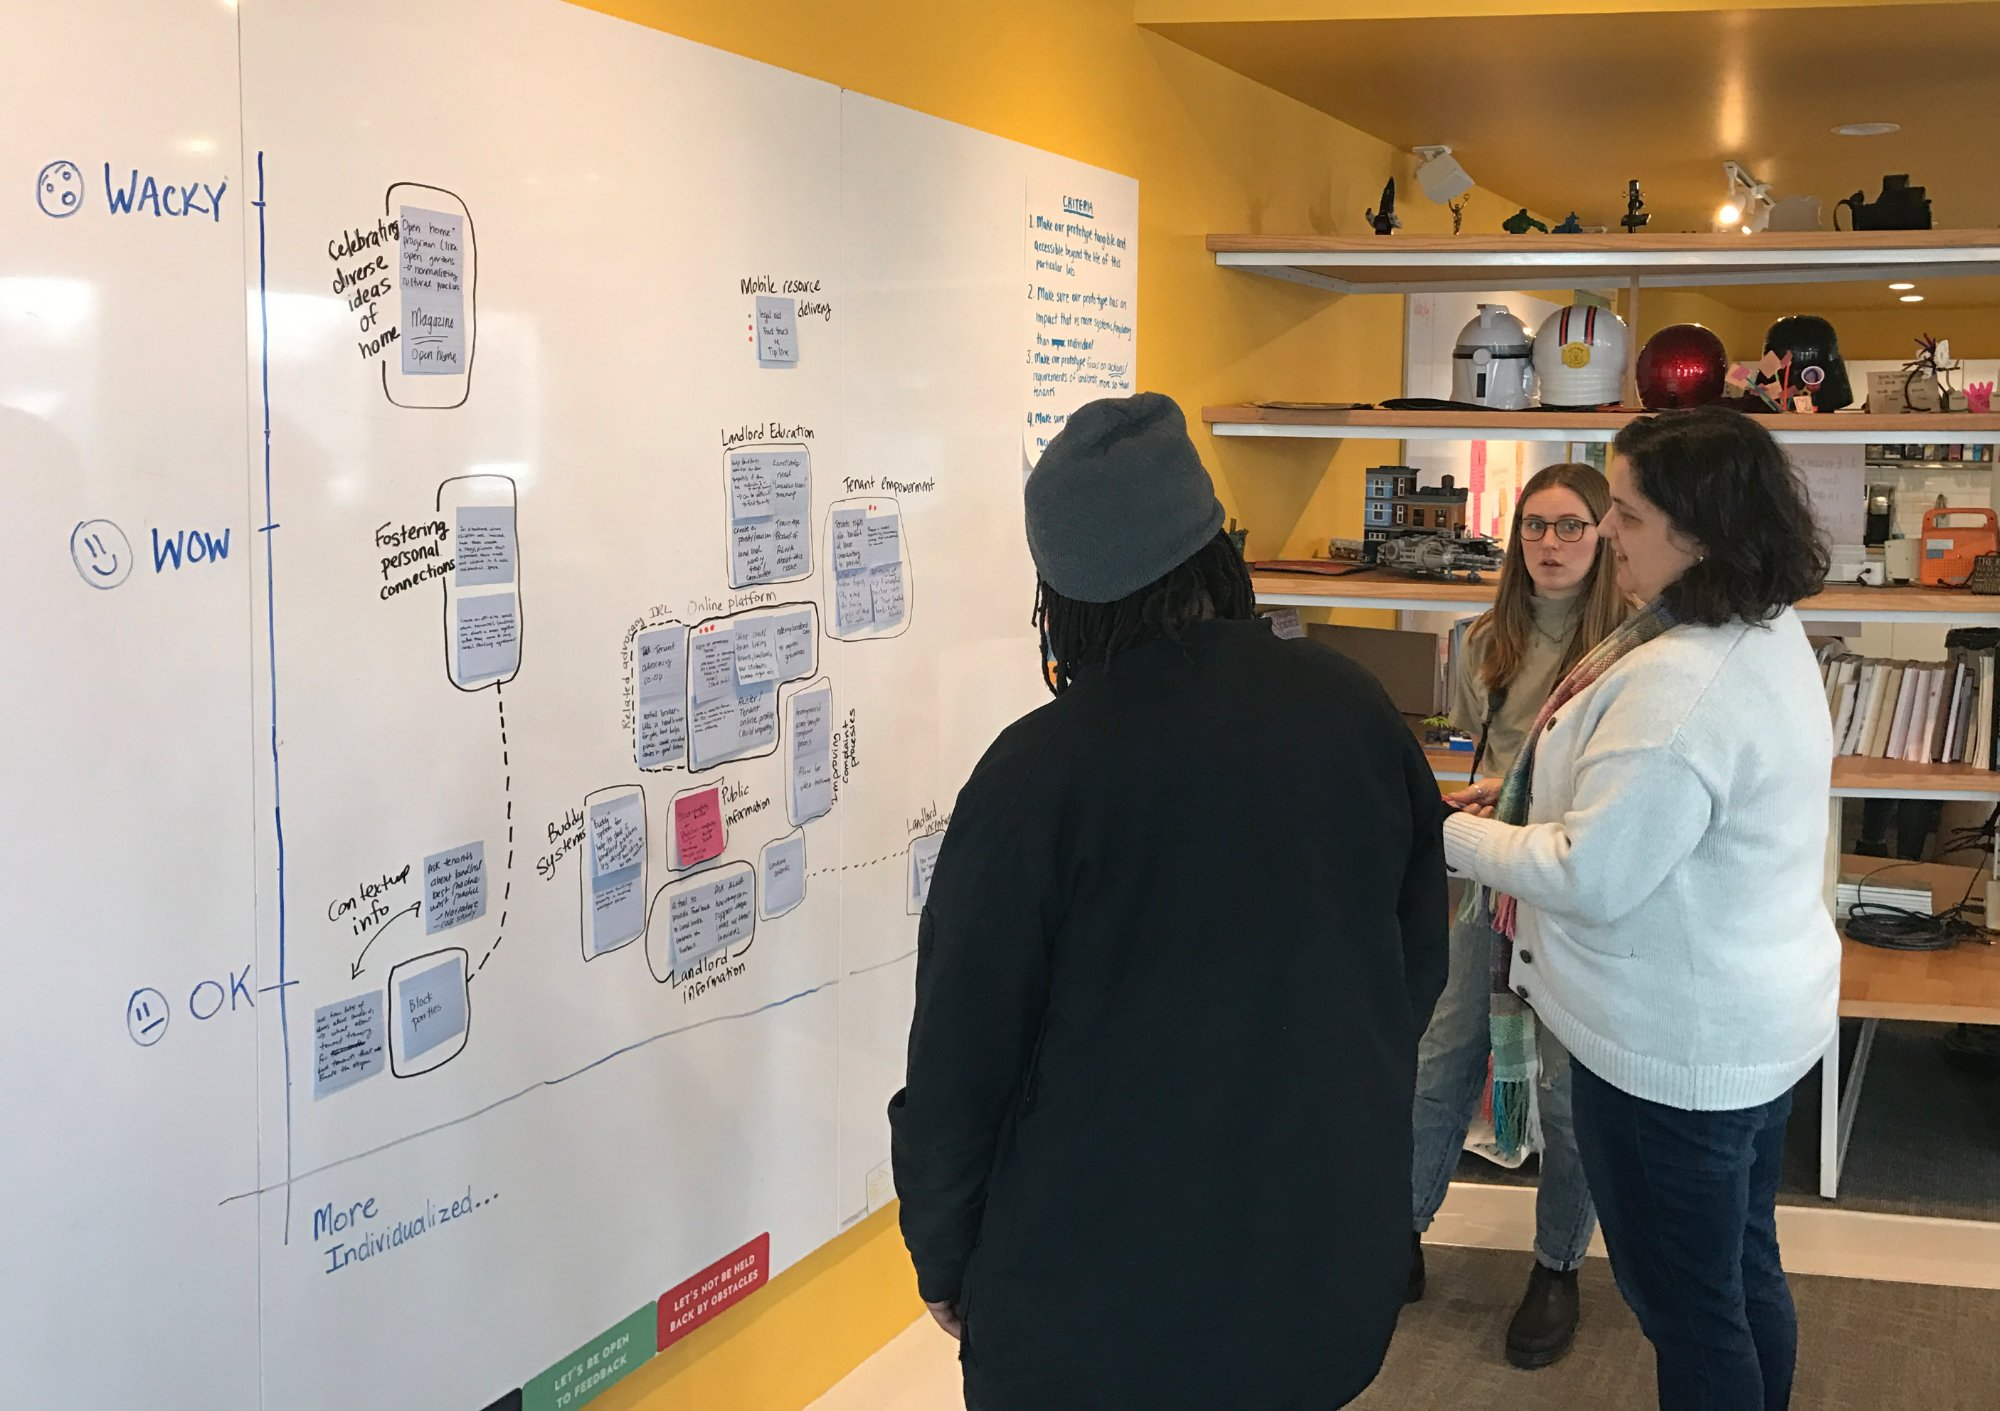 Brandon Wint and Vanessa de Koninck chat with lab graphic recorder Molly McMahon